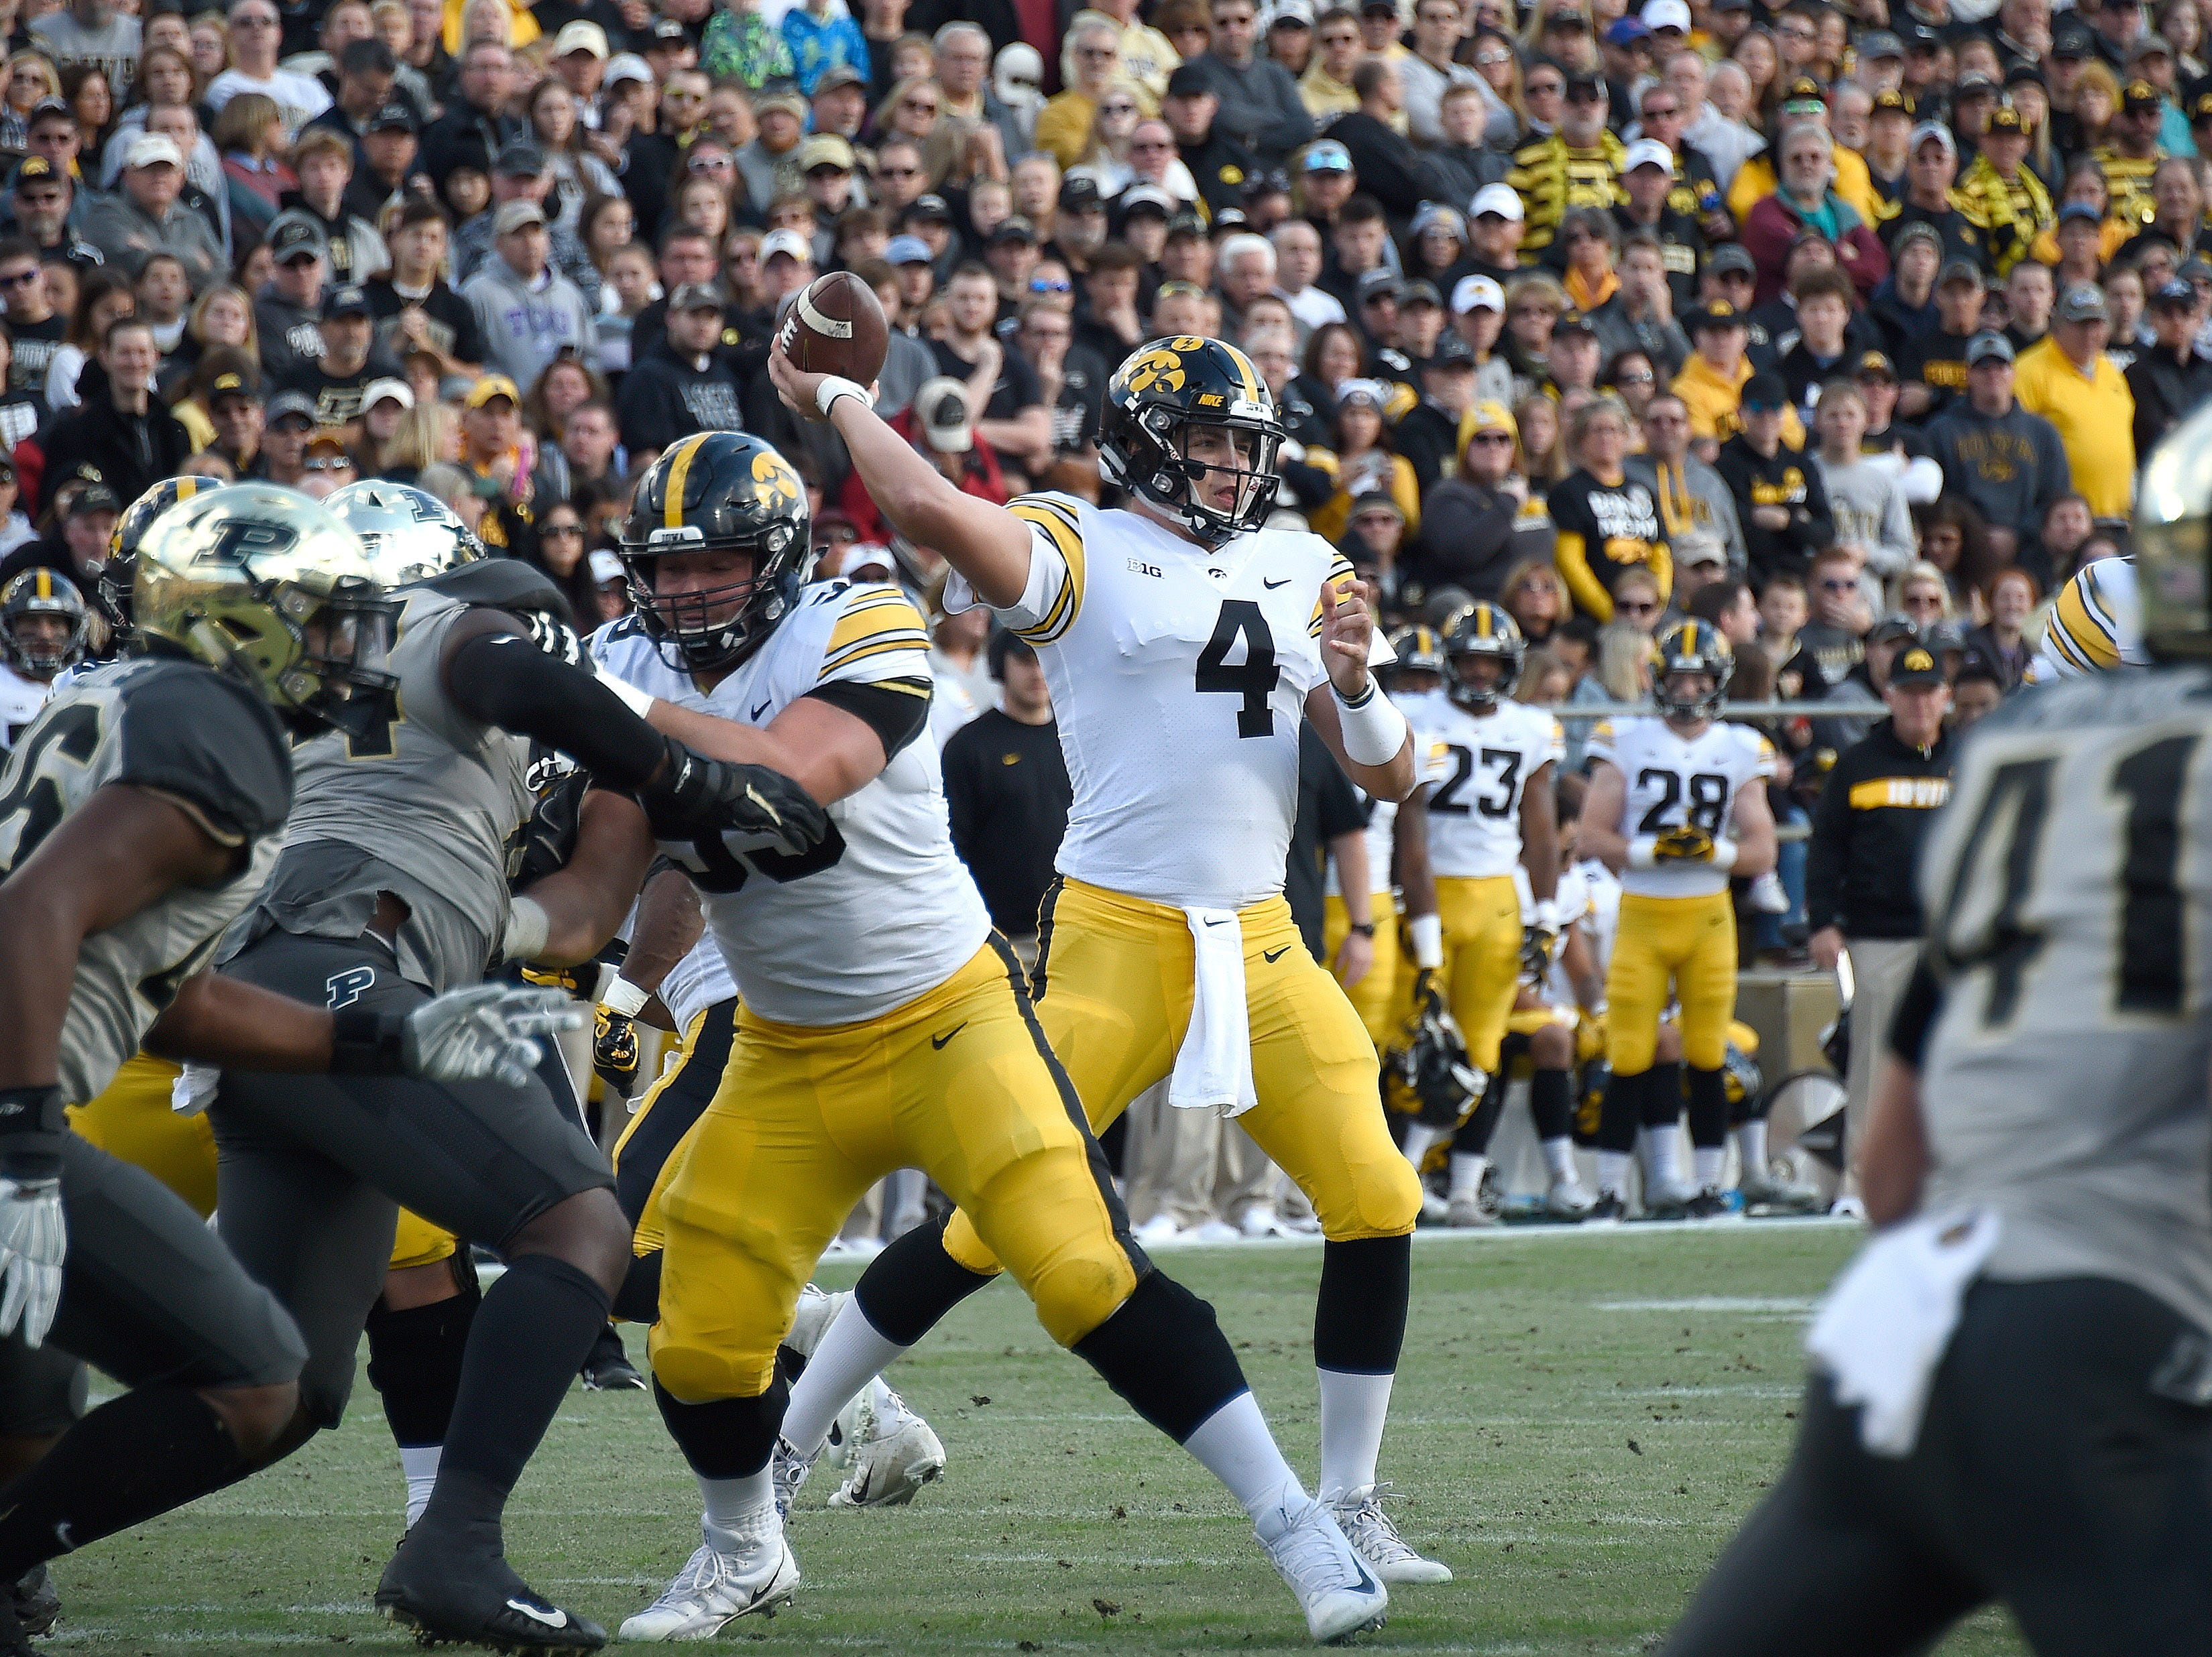 Nov 3, 2018; West Lafayette, IN, USA;  Iowa Hawkeyes quarterback Nate Stanley (4) throws a pass under pressure from the Purdue Boilermakers at Ross-Ade Stadium.